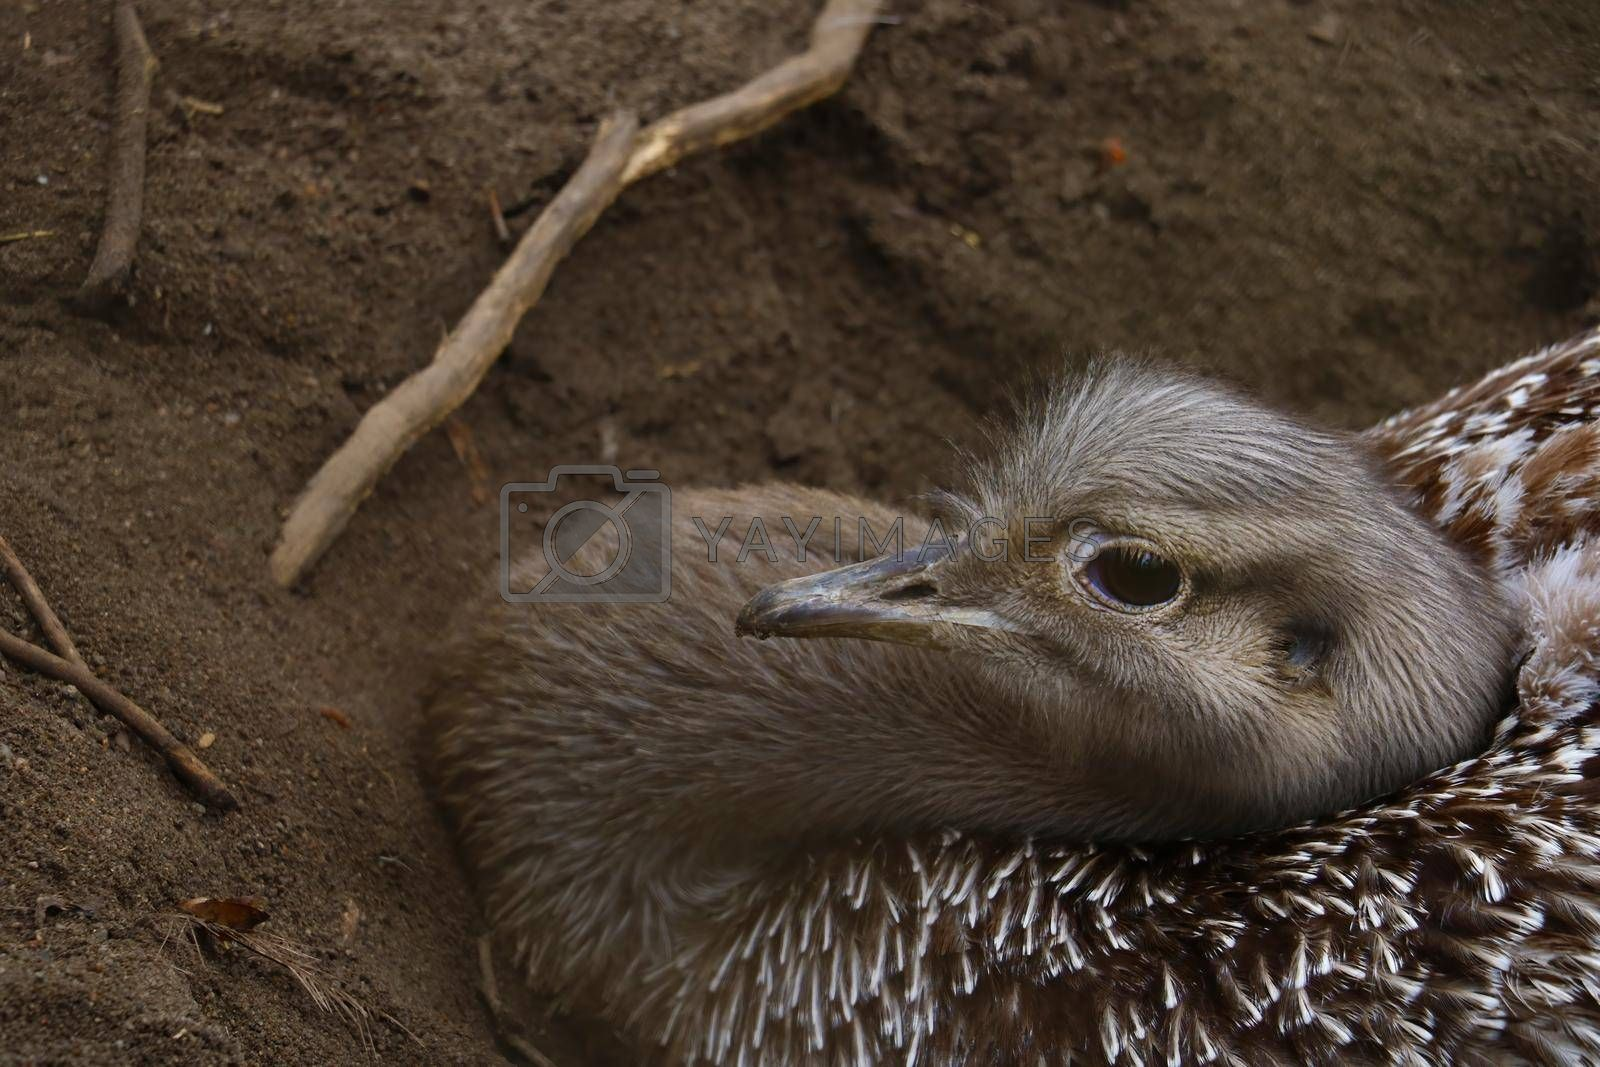 Royalty free image of Close-up of an ostrich sitting in the sand and incubating eggs. by kip02kas